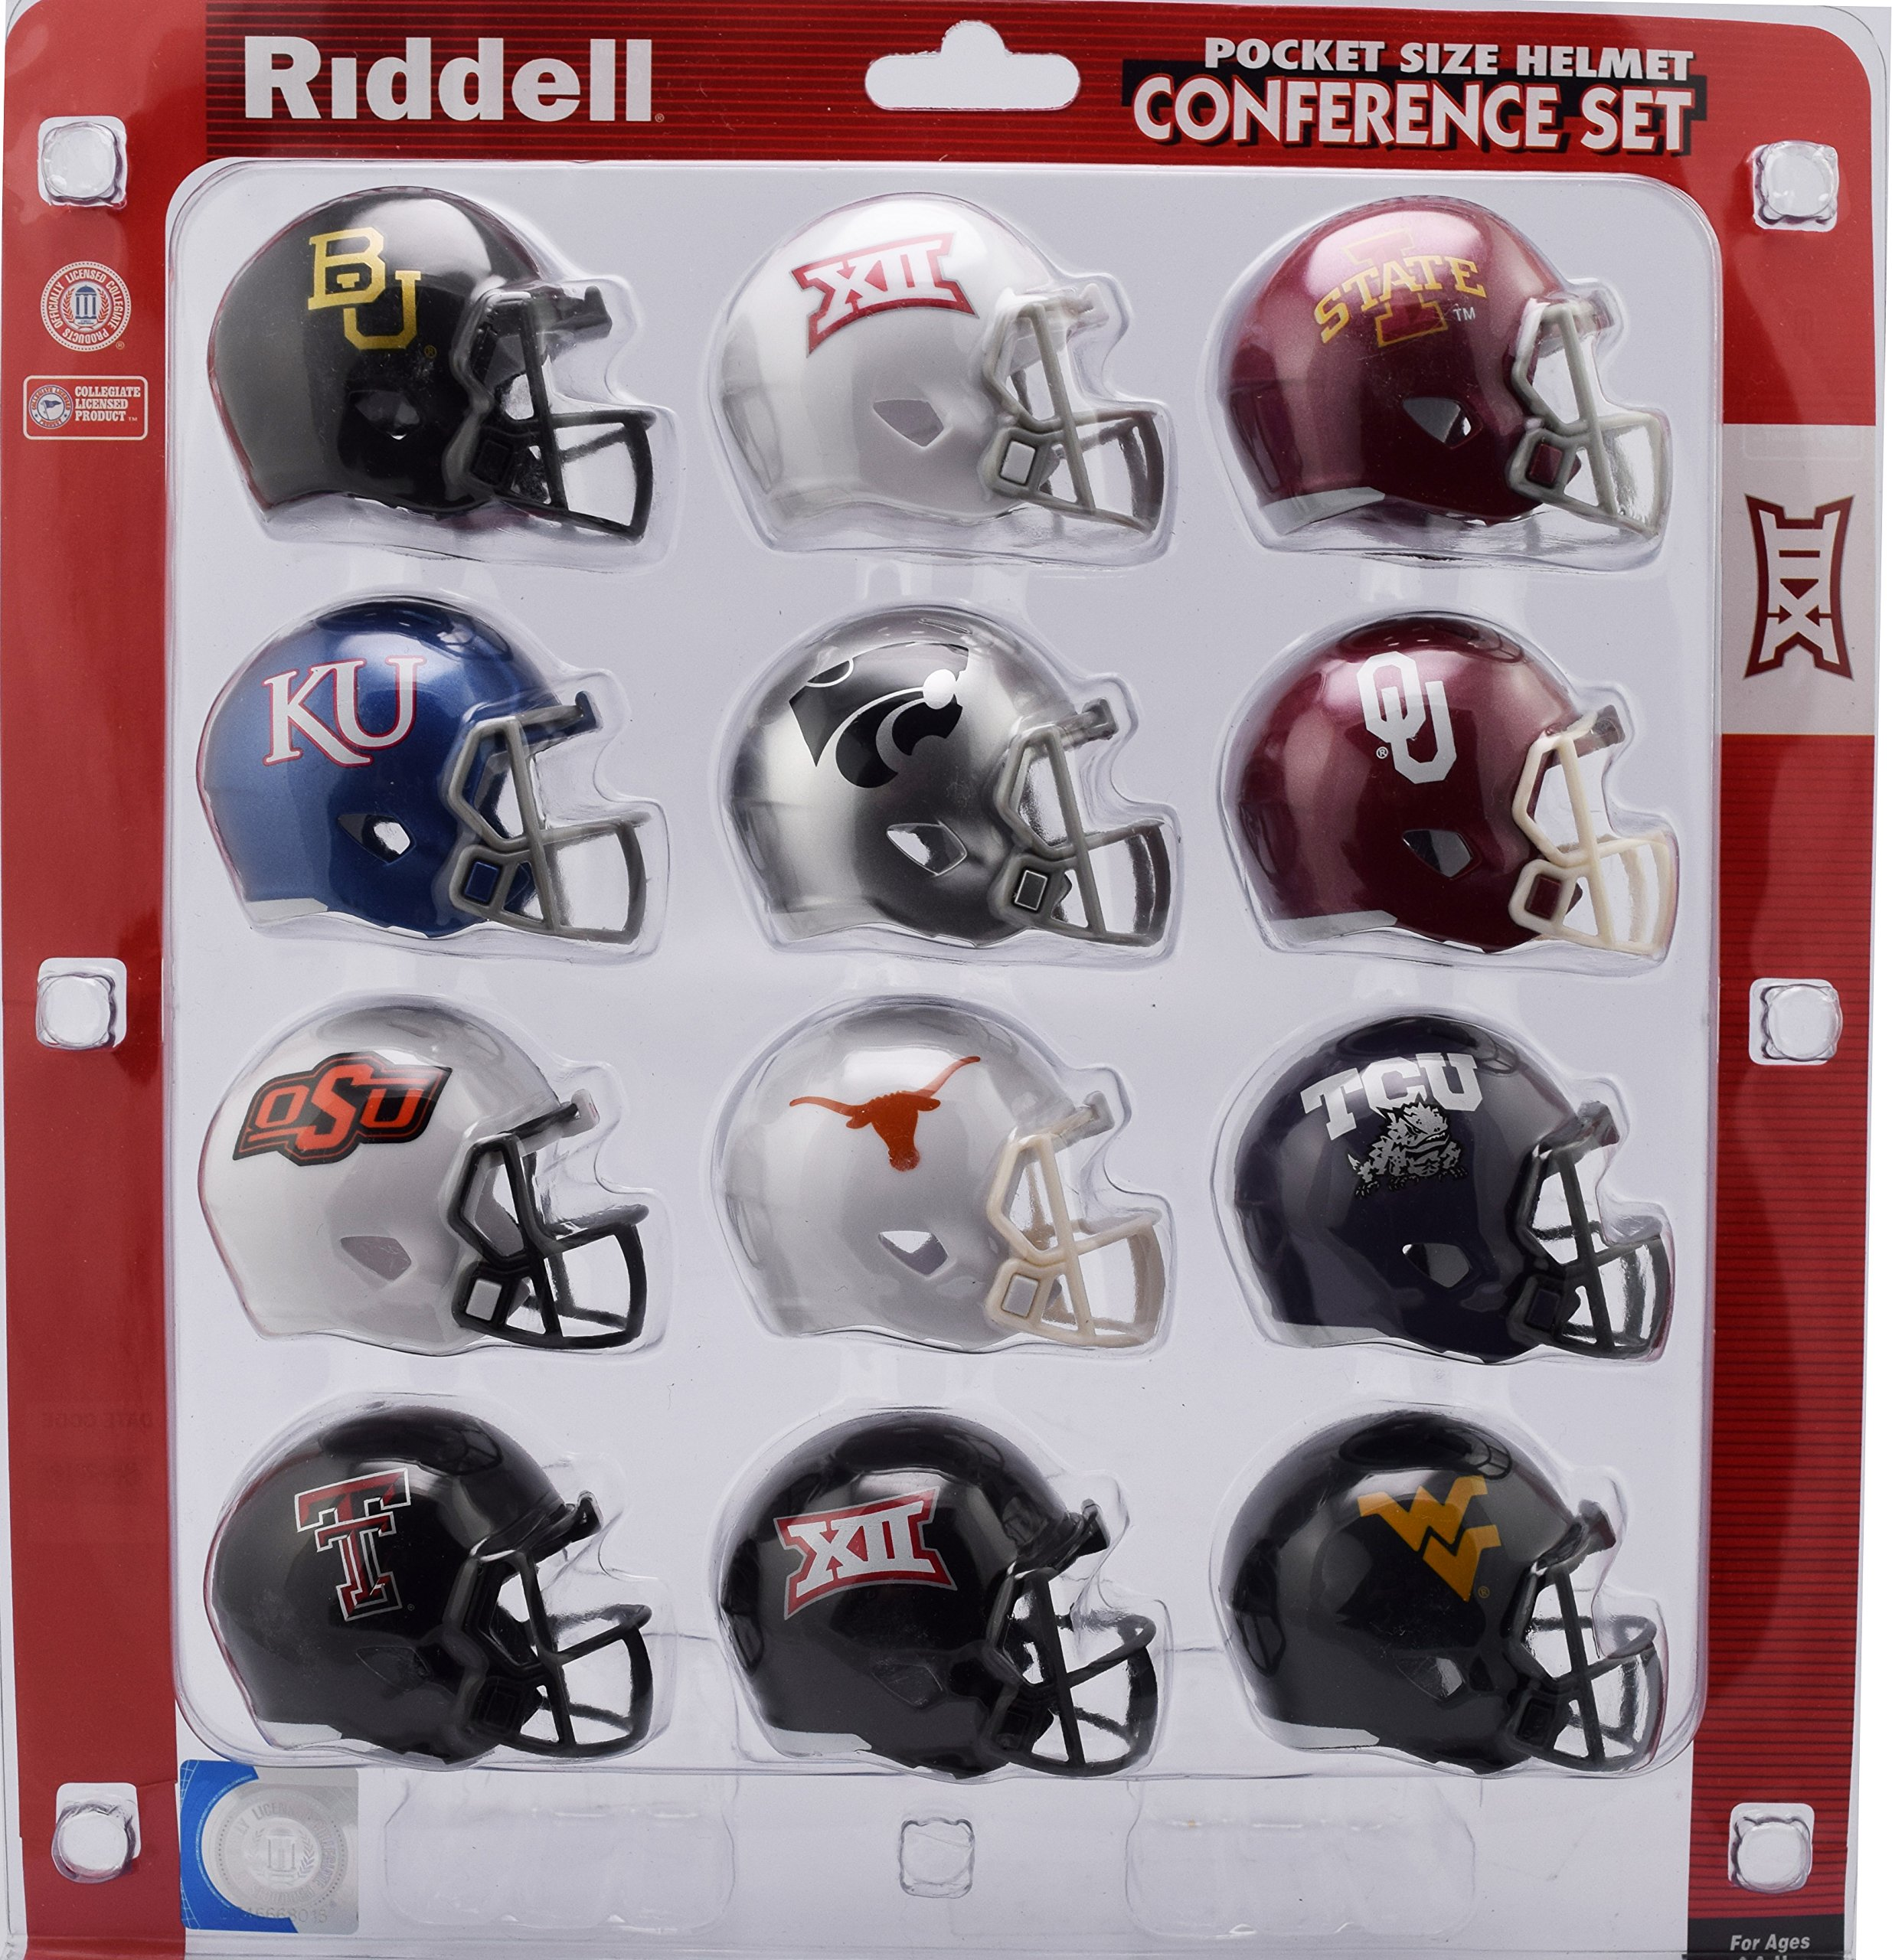 Riddell Pocket Pro Speed Helmet Big XII 12 Conference Set 12 Helmets Baylor, Iowa St, Kansas, Kansas St,Oklahoma,Oklahoma St,Texas,TCU, Texas Tech, West Virginia, 2 Big XII Logo Helmets 2018 Set